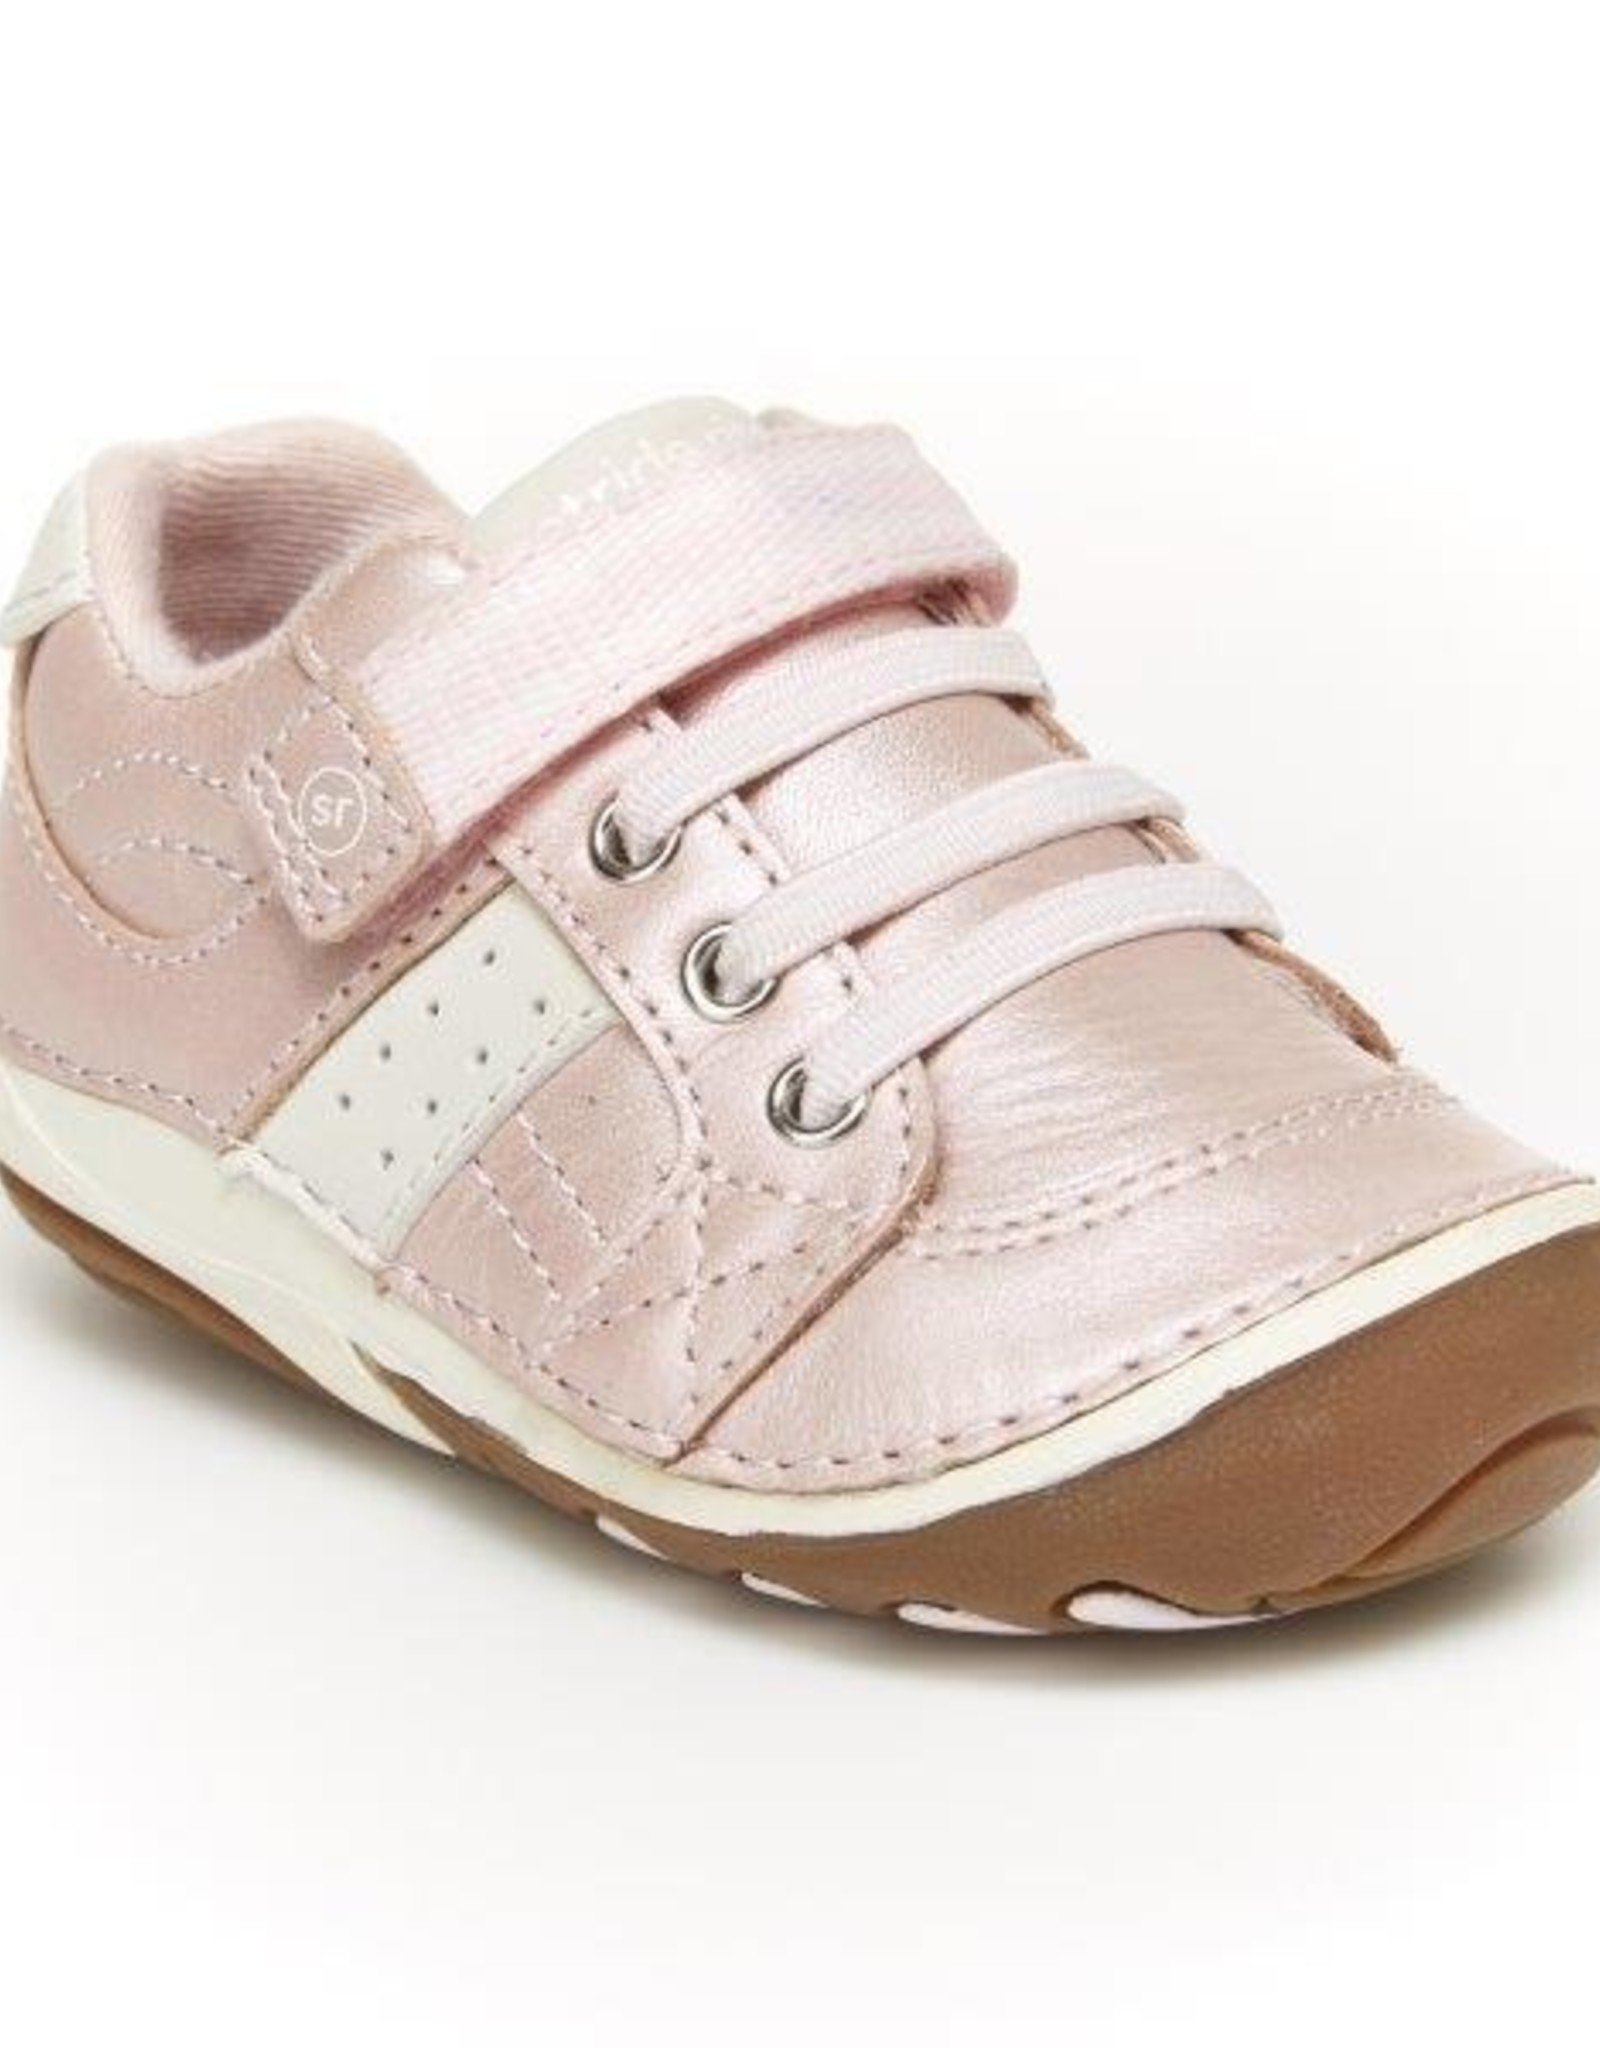 Striderite Artie Soft Motion Sneaker for Girl